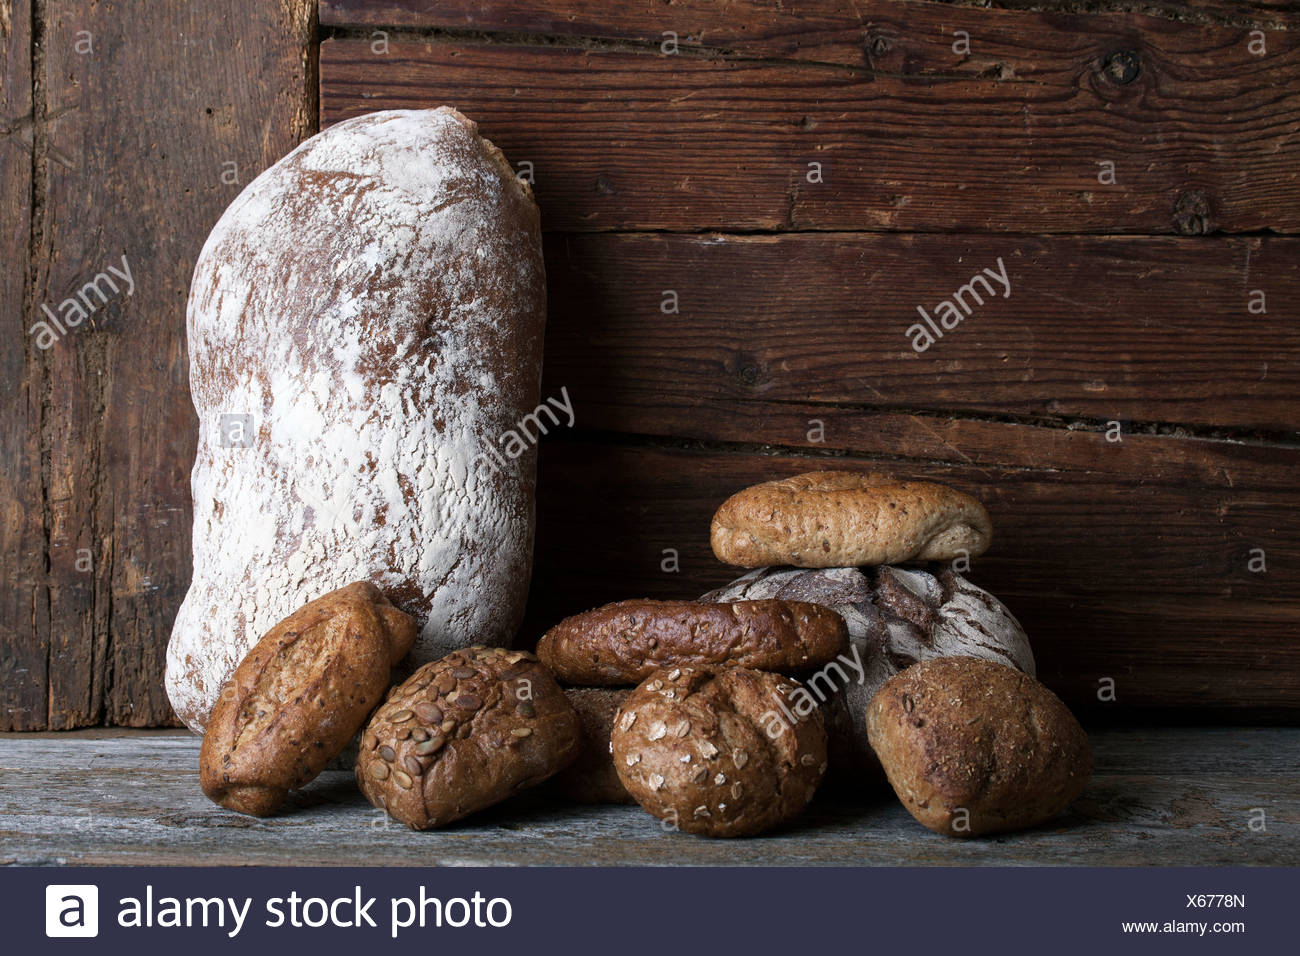 Loaf of Bread and rolls on a rustic wooden surface Stock Photo